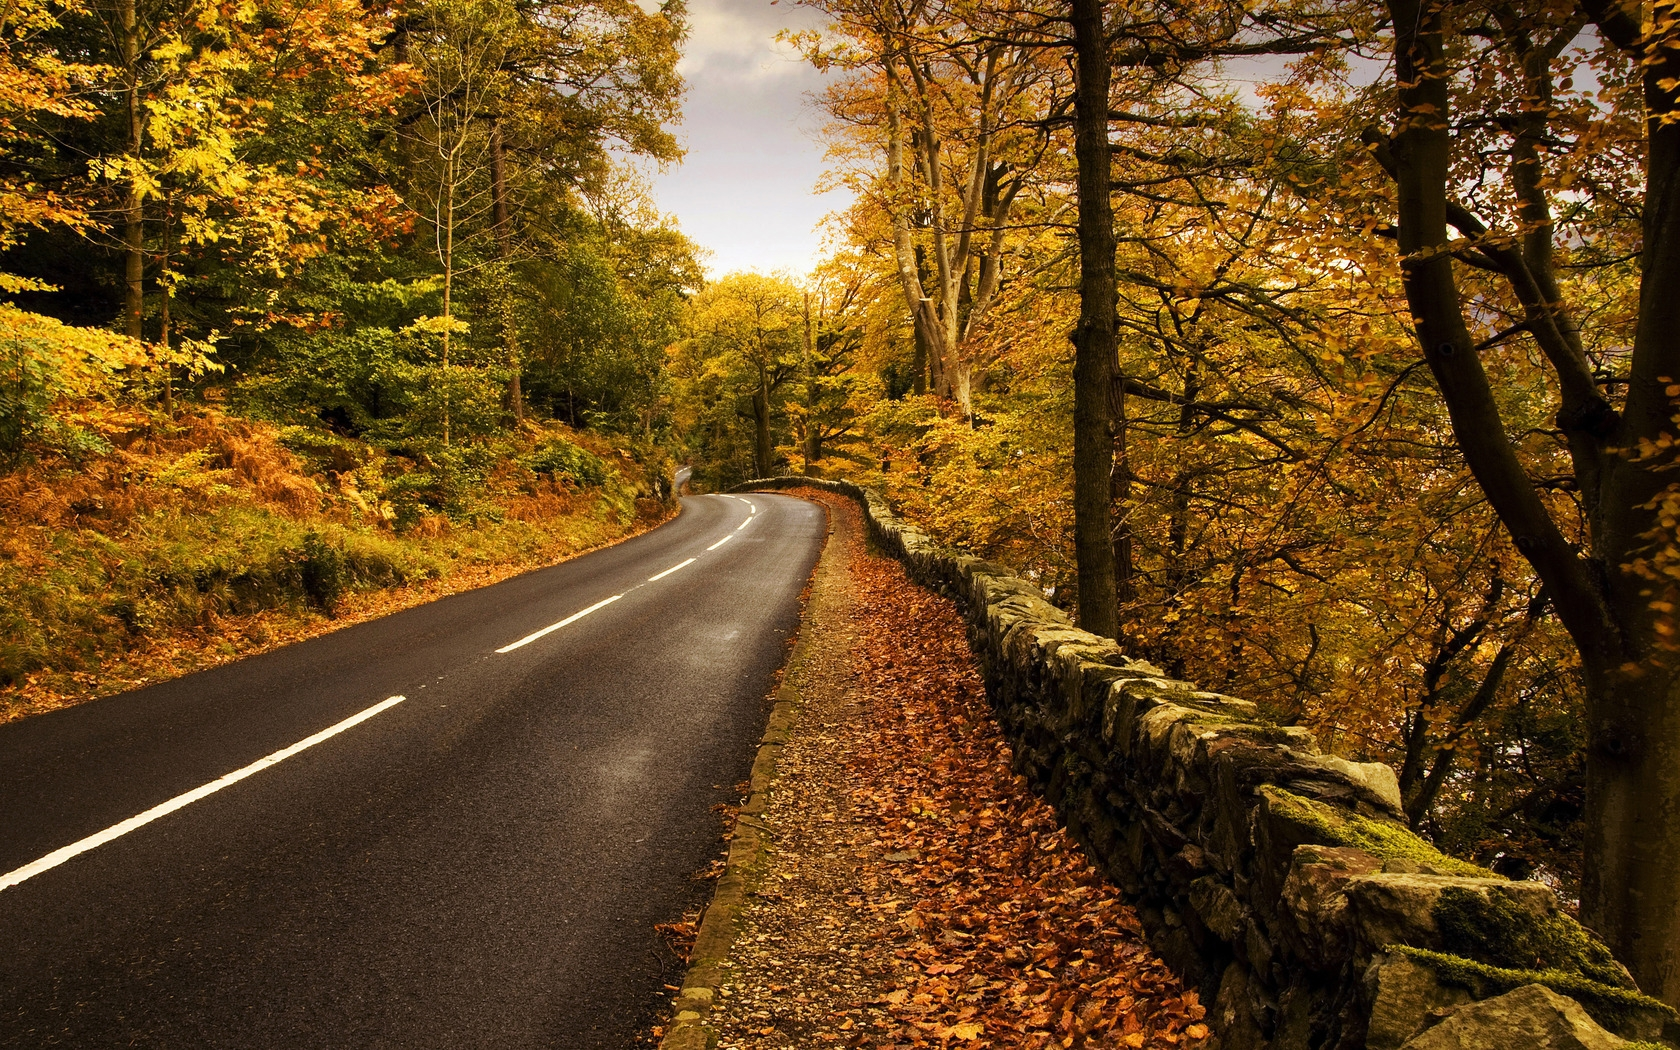 34867 download wallpaper Landscape, Roads, Autumn screensavers and pictures for free